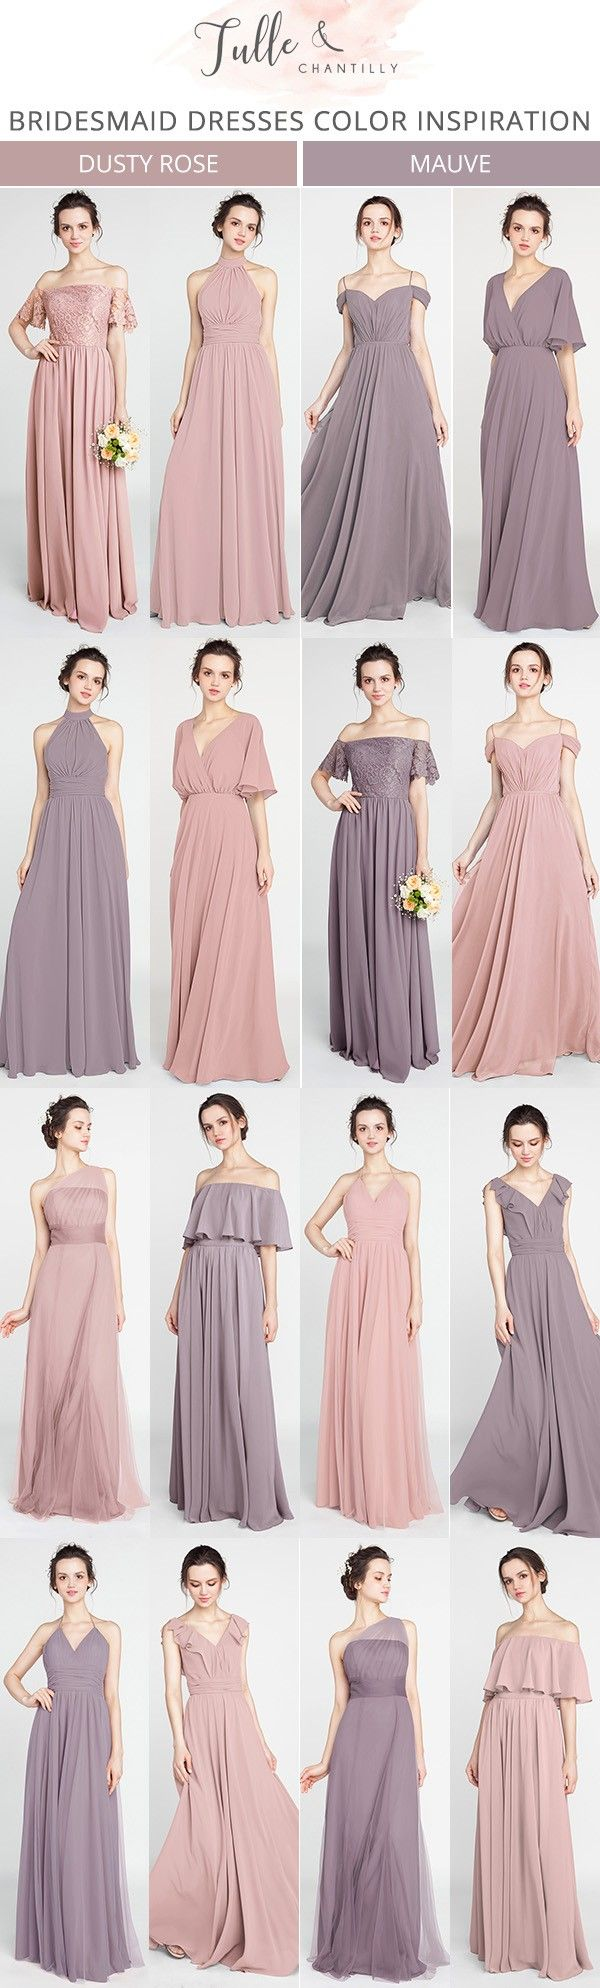 dusty rose and mauve bridesmaid dresses for 2018 #wedding #bridalparty #bridesmaiddress